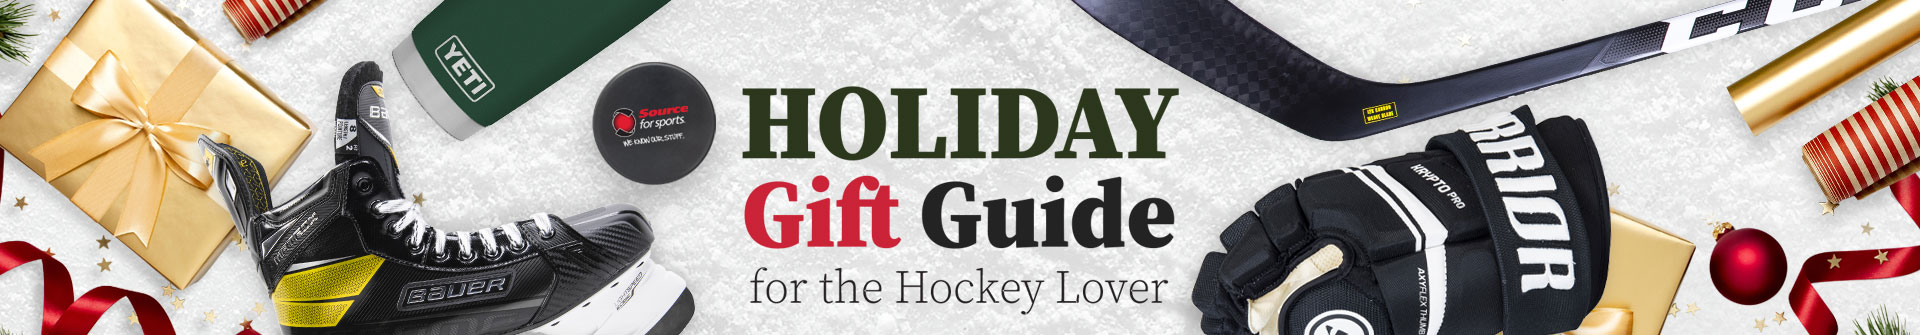 Shop Our Hockey Gift Guides & Discover Christmas Gift Ideas At Source For Sports Hockey Stores Near You.